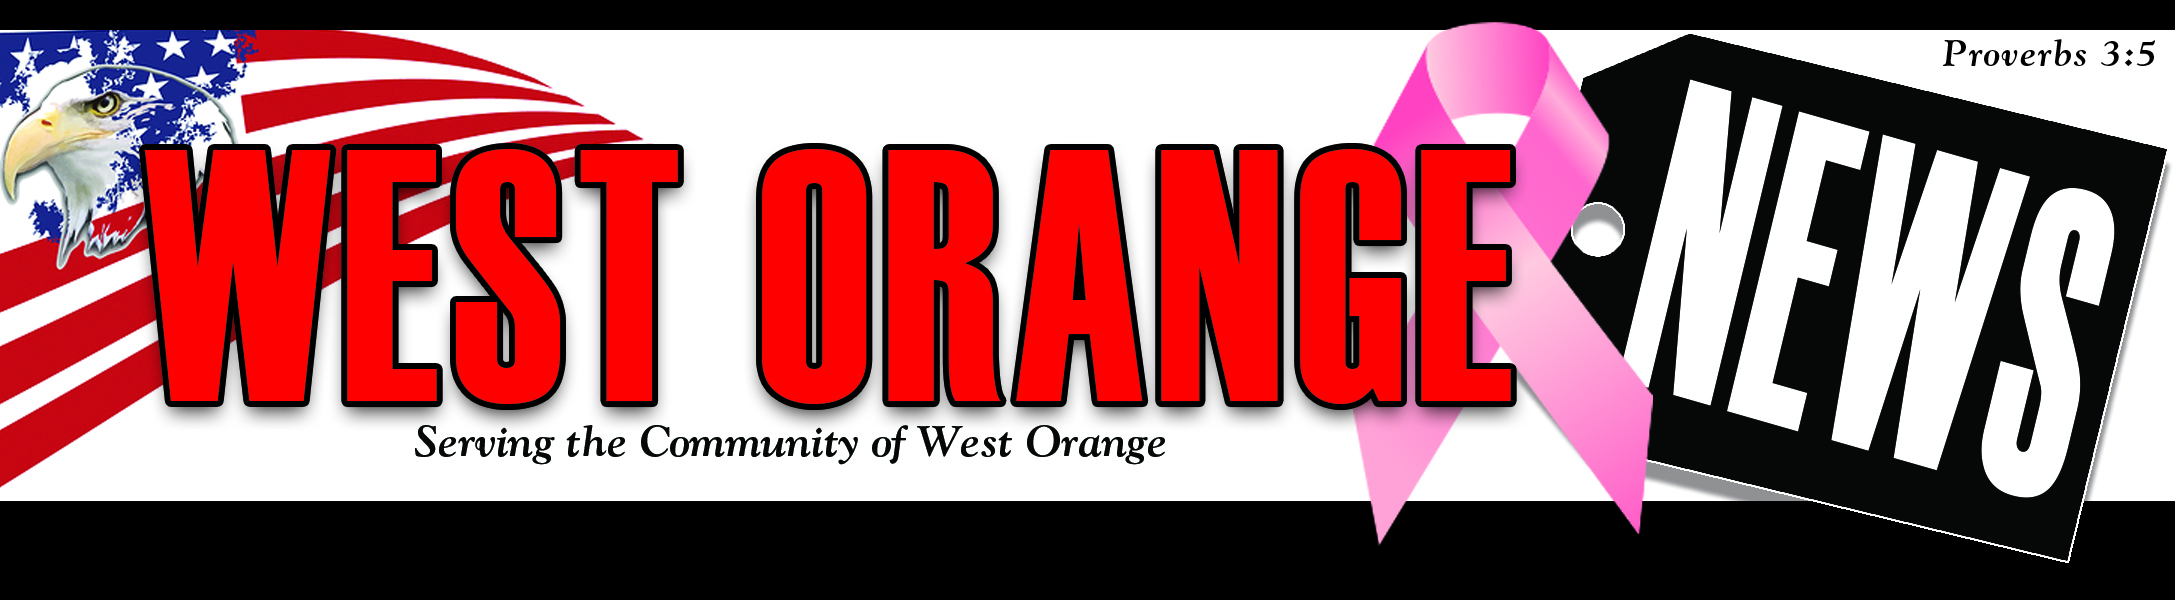 West Orange Smaller Logo